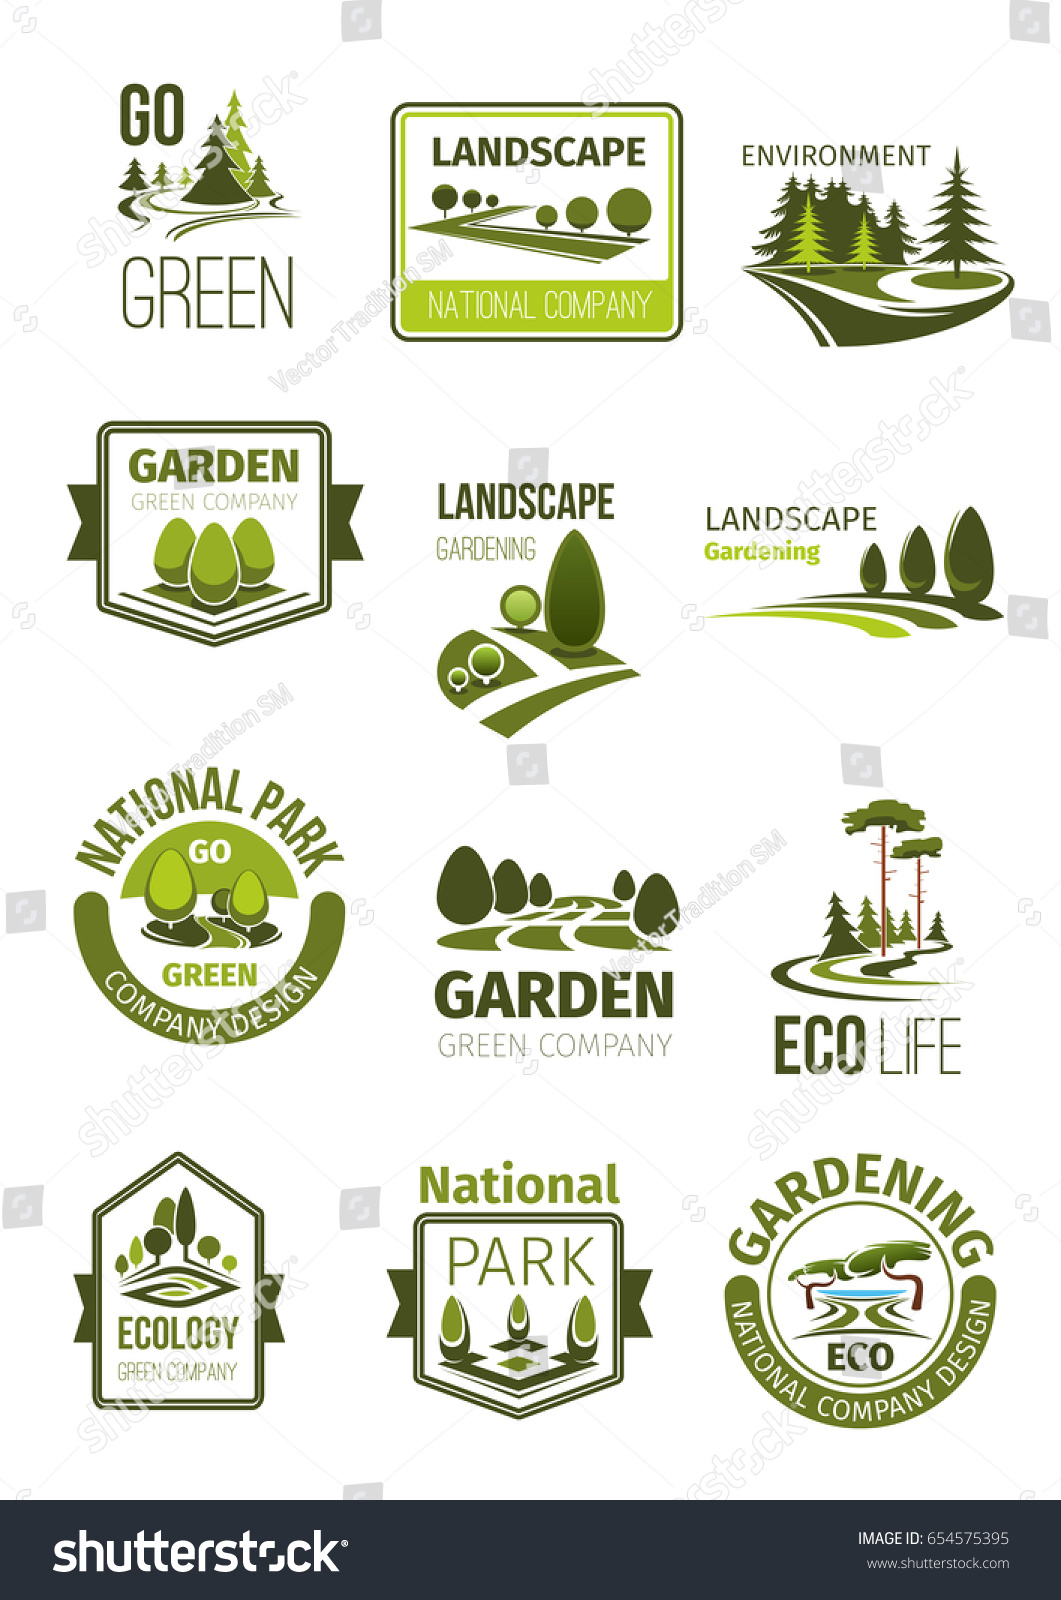 Garden green landscape design company icons stock vector for Landscape design company